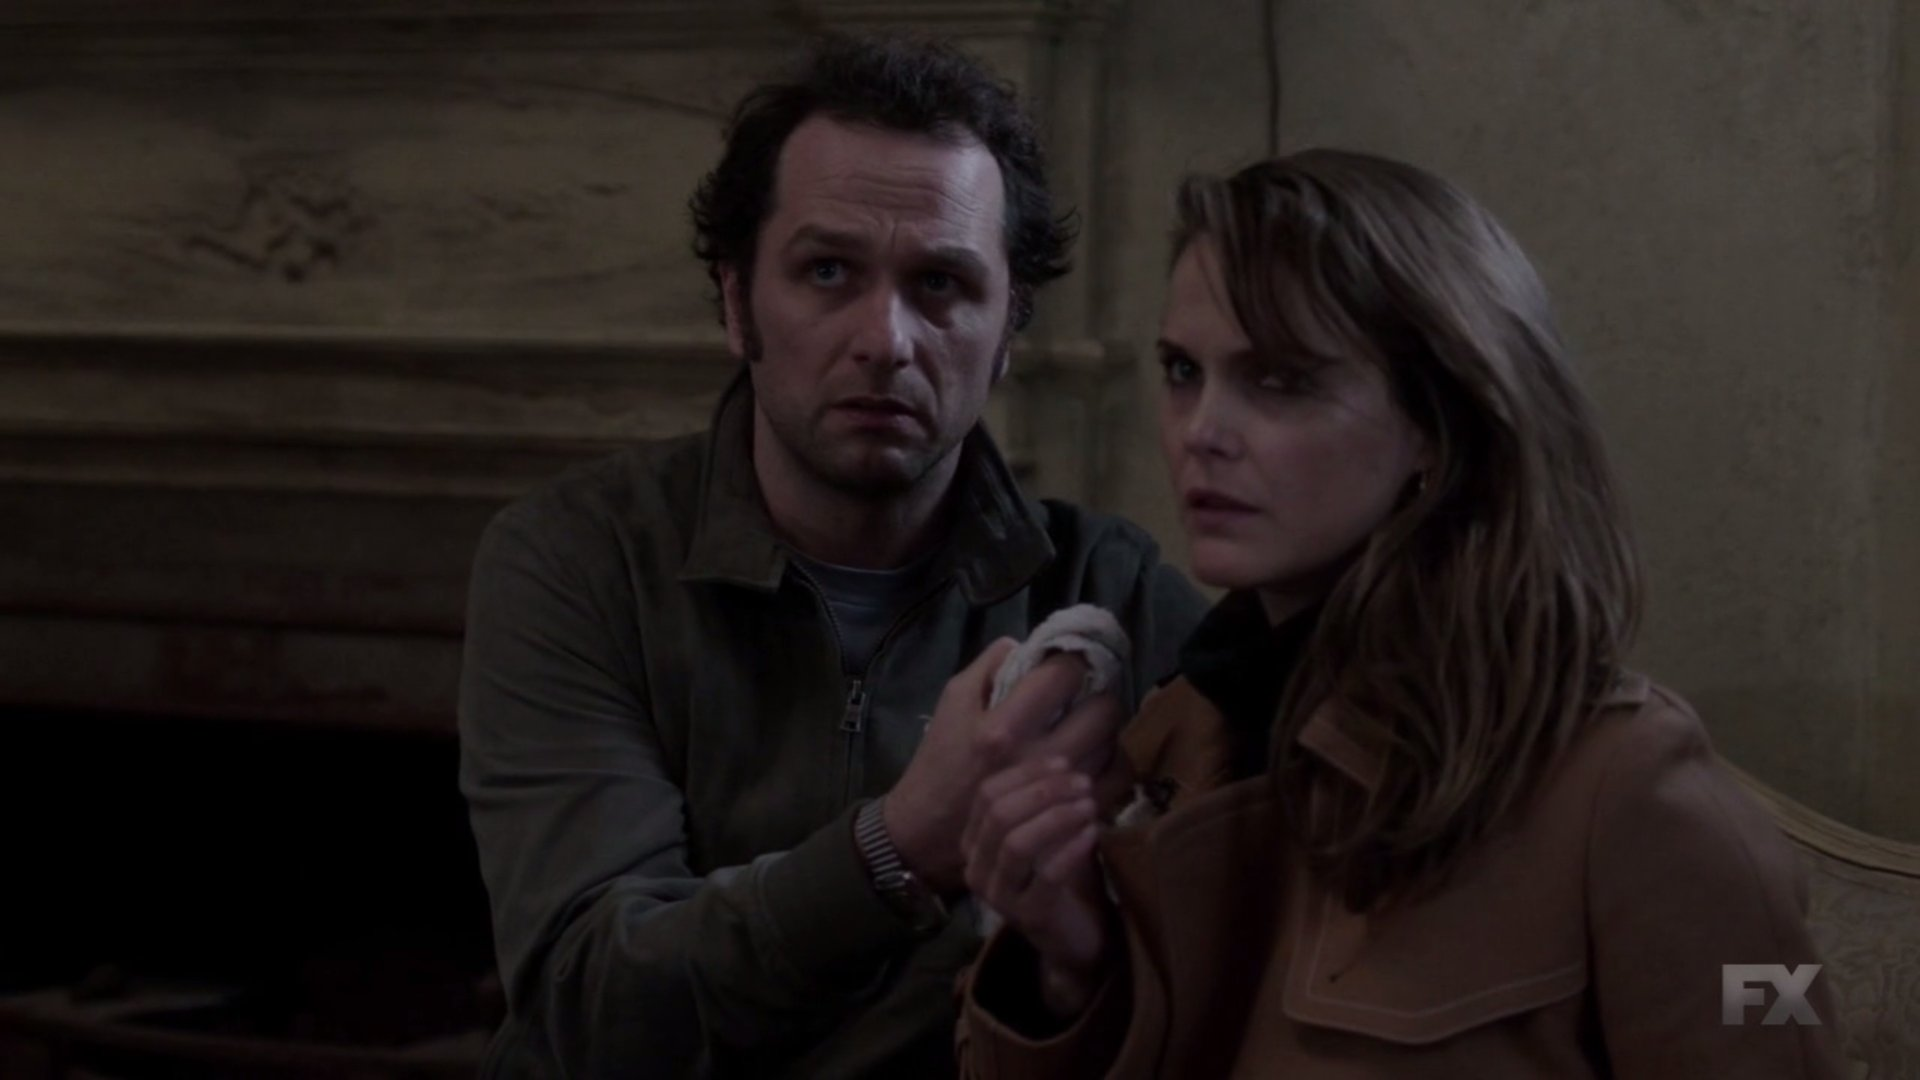 The Americans - 04x08 - The Magic of David Copperfield V - The Statue of Liberty Disappears